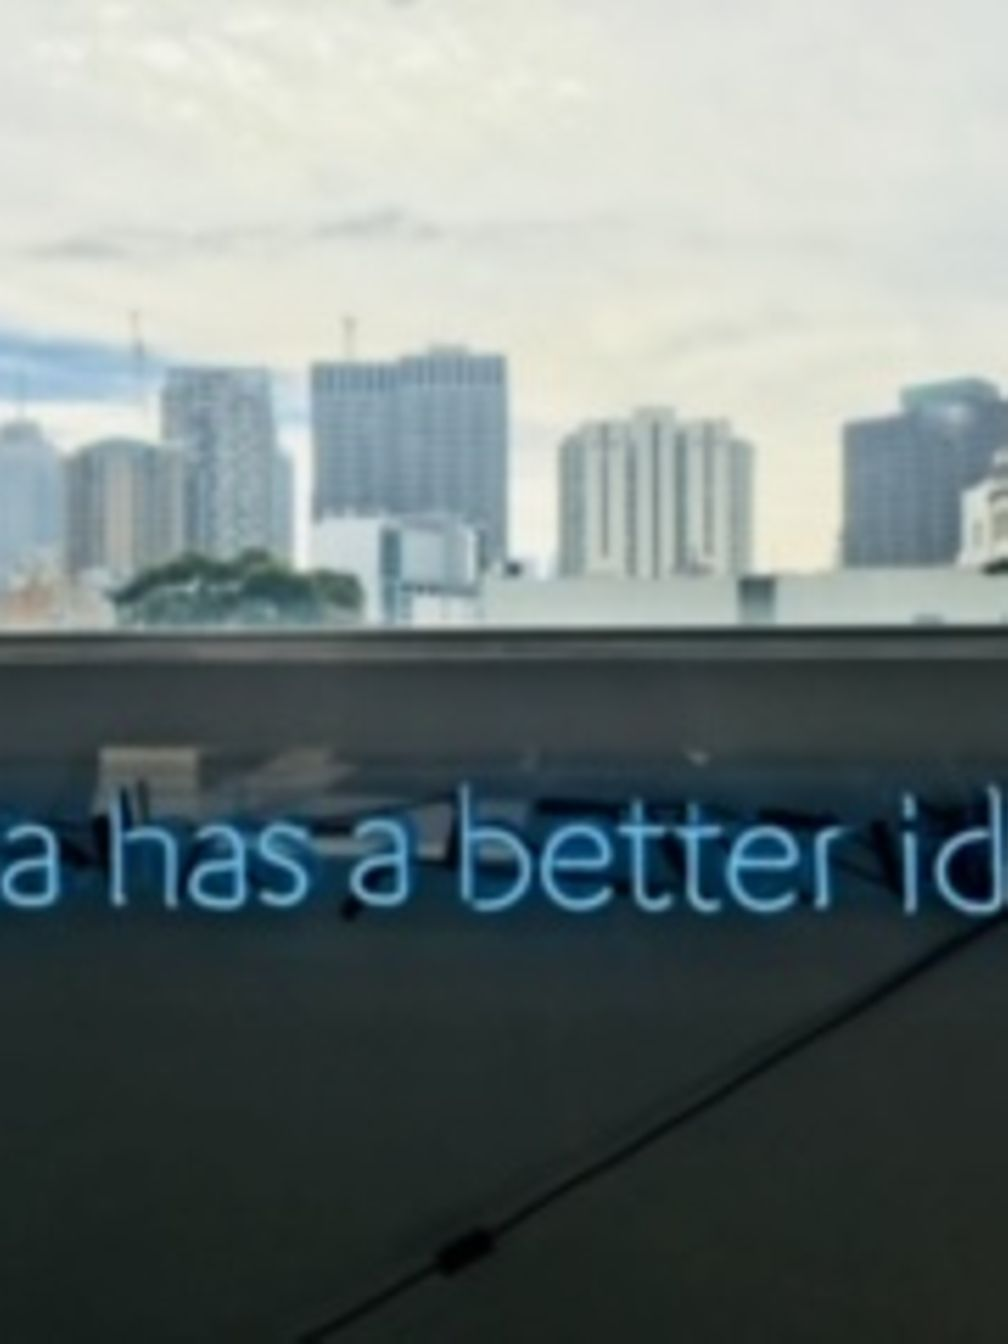 Data has a better idea in Leuchtbuchstaben vor einer Skyline